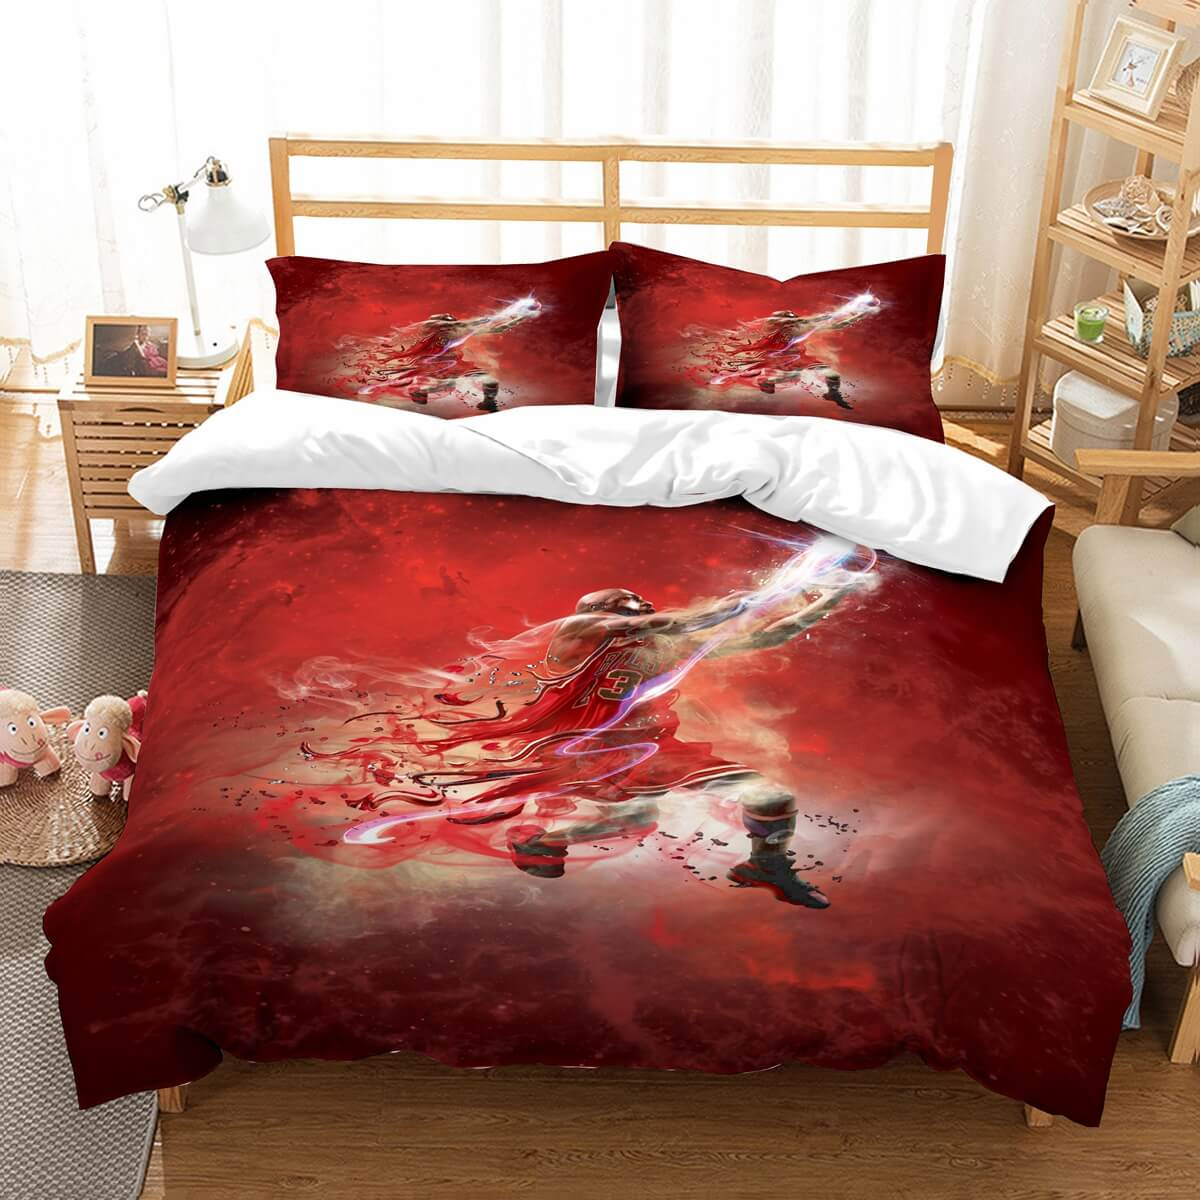 3D Customize Micheal Jordan Bedding Set Duvet Cover Set Bedroom Set Bedlinen